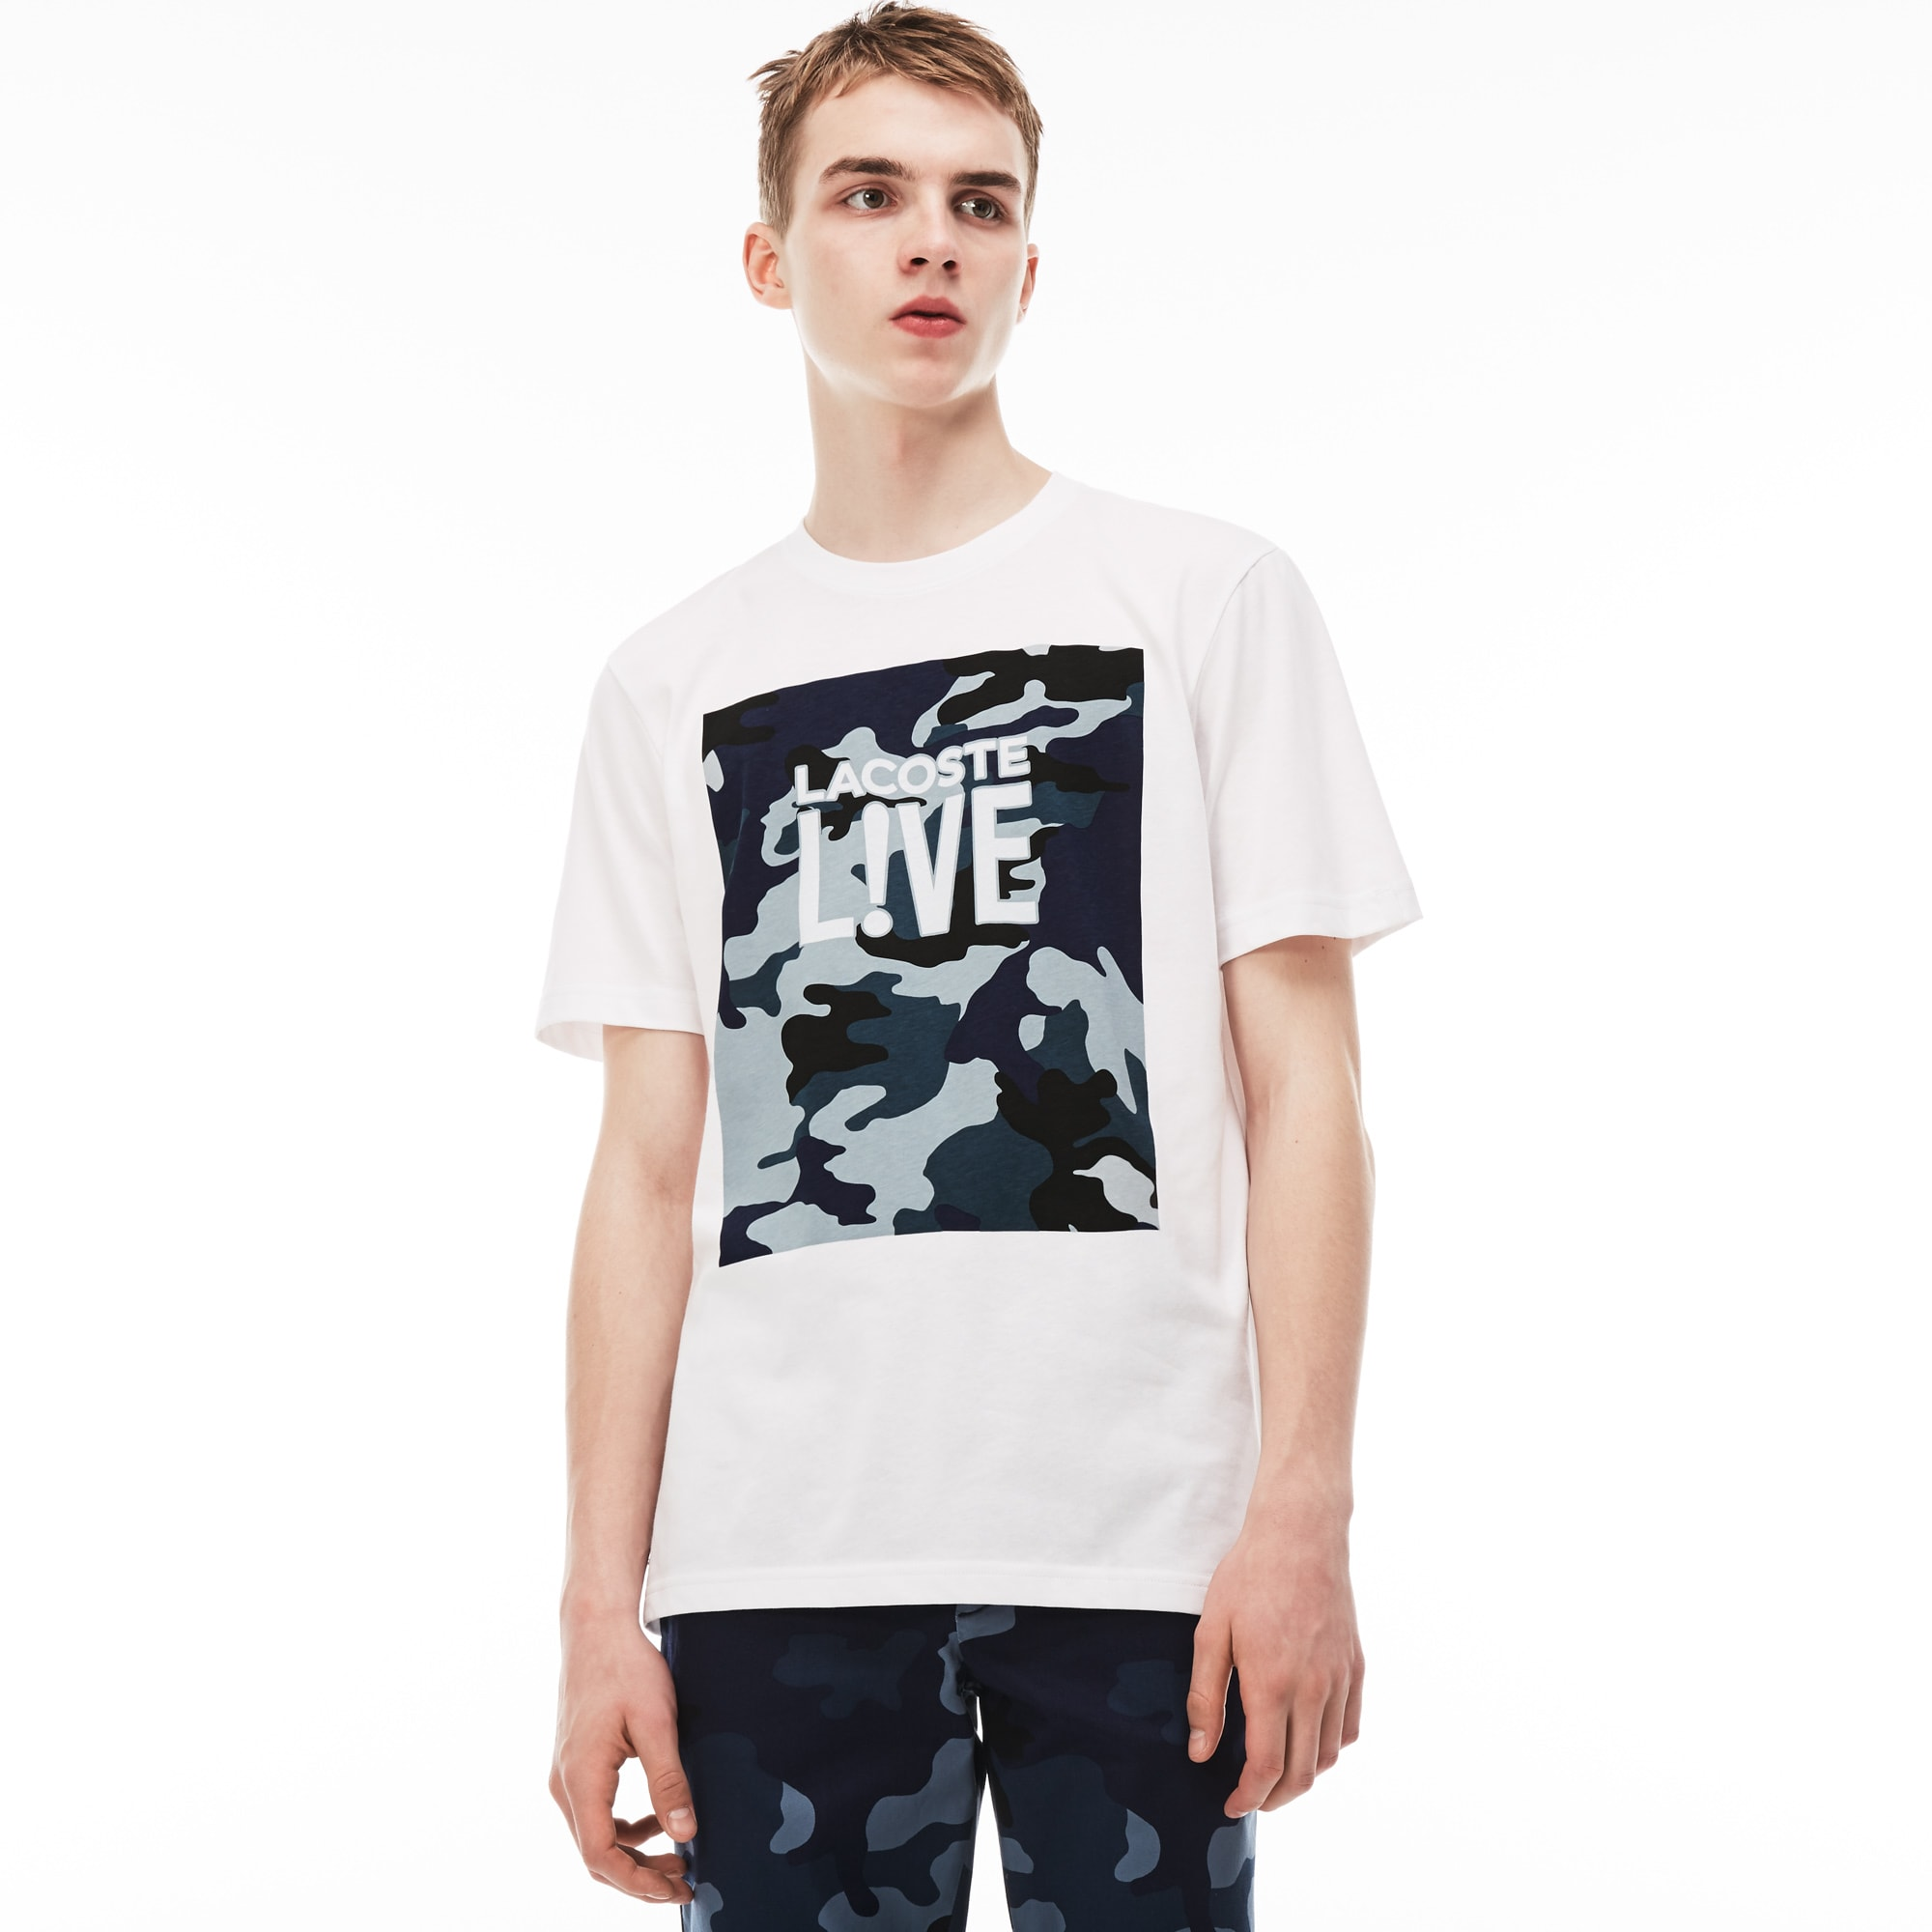 Men's Lacoste LIVE Crew Neck Print Design Jersey T-shirt. 305.00 AED 305.00  AED. Colour : WHITE/MILL BLUE-MULTICO